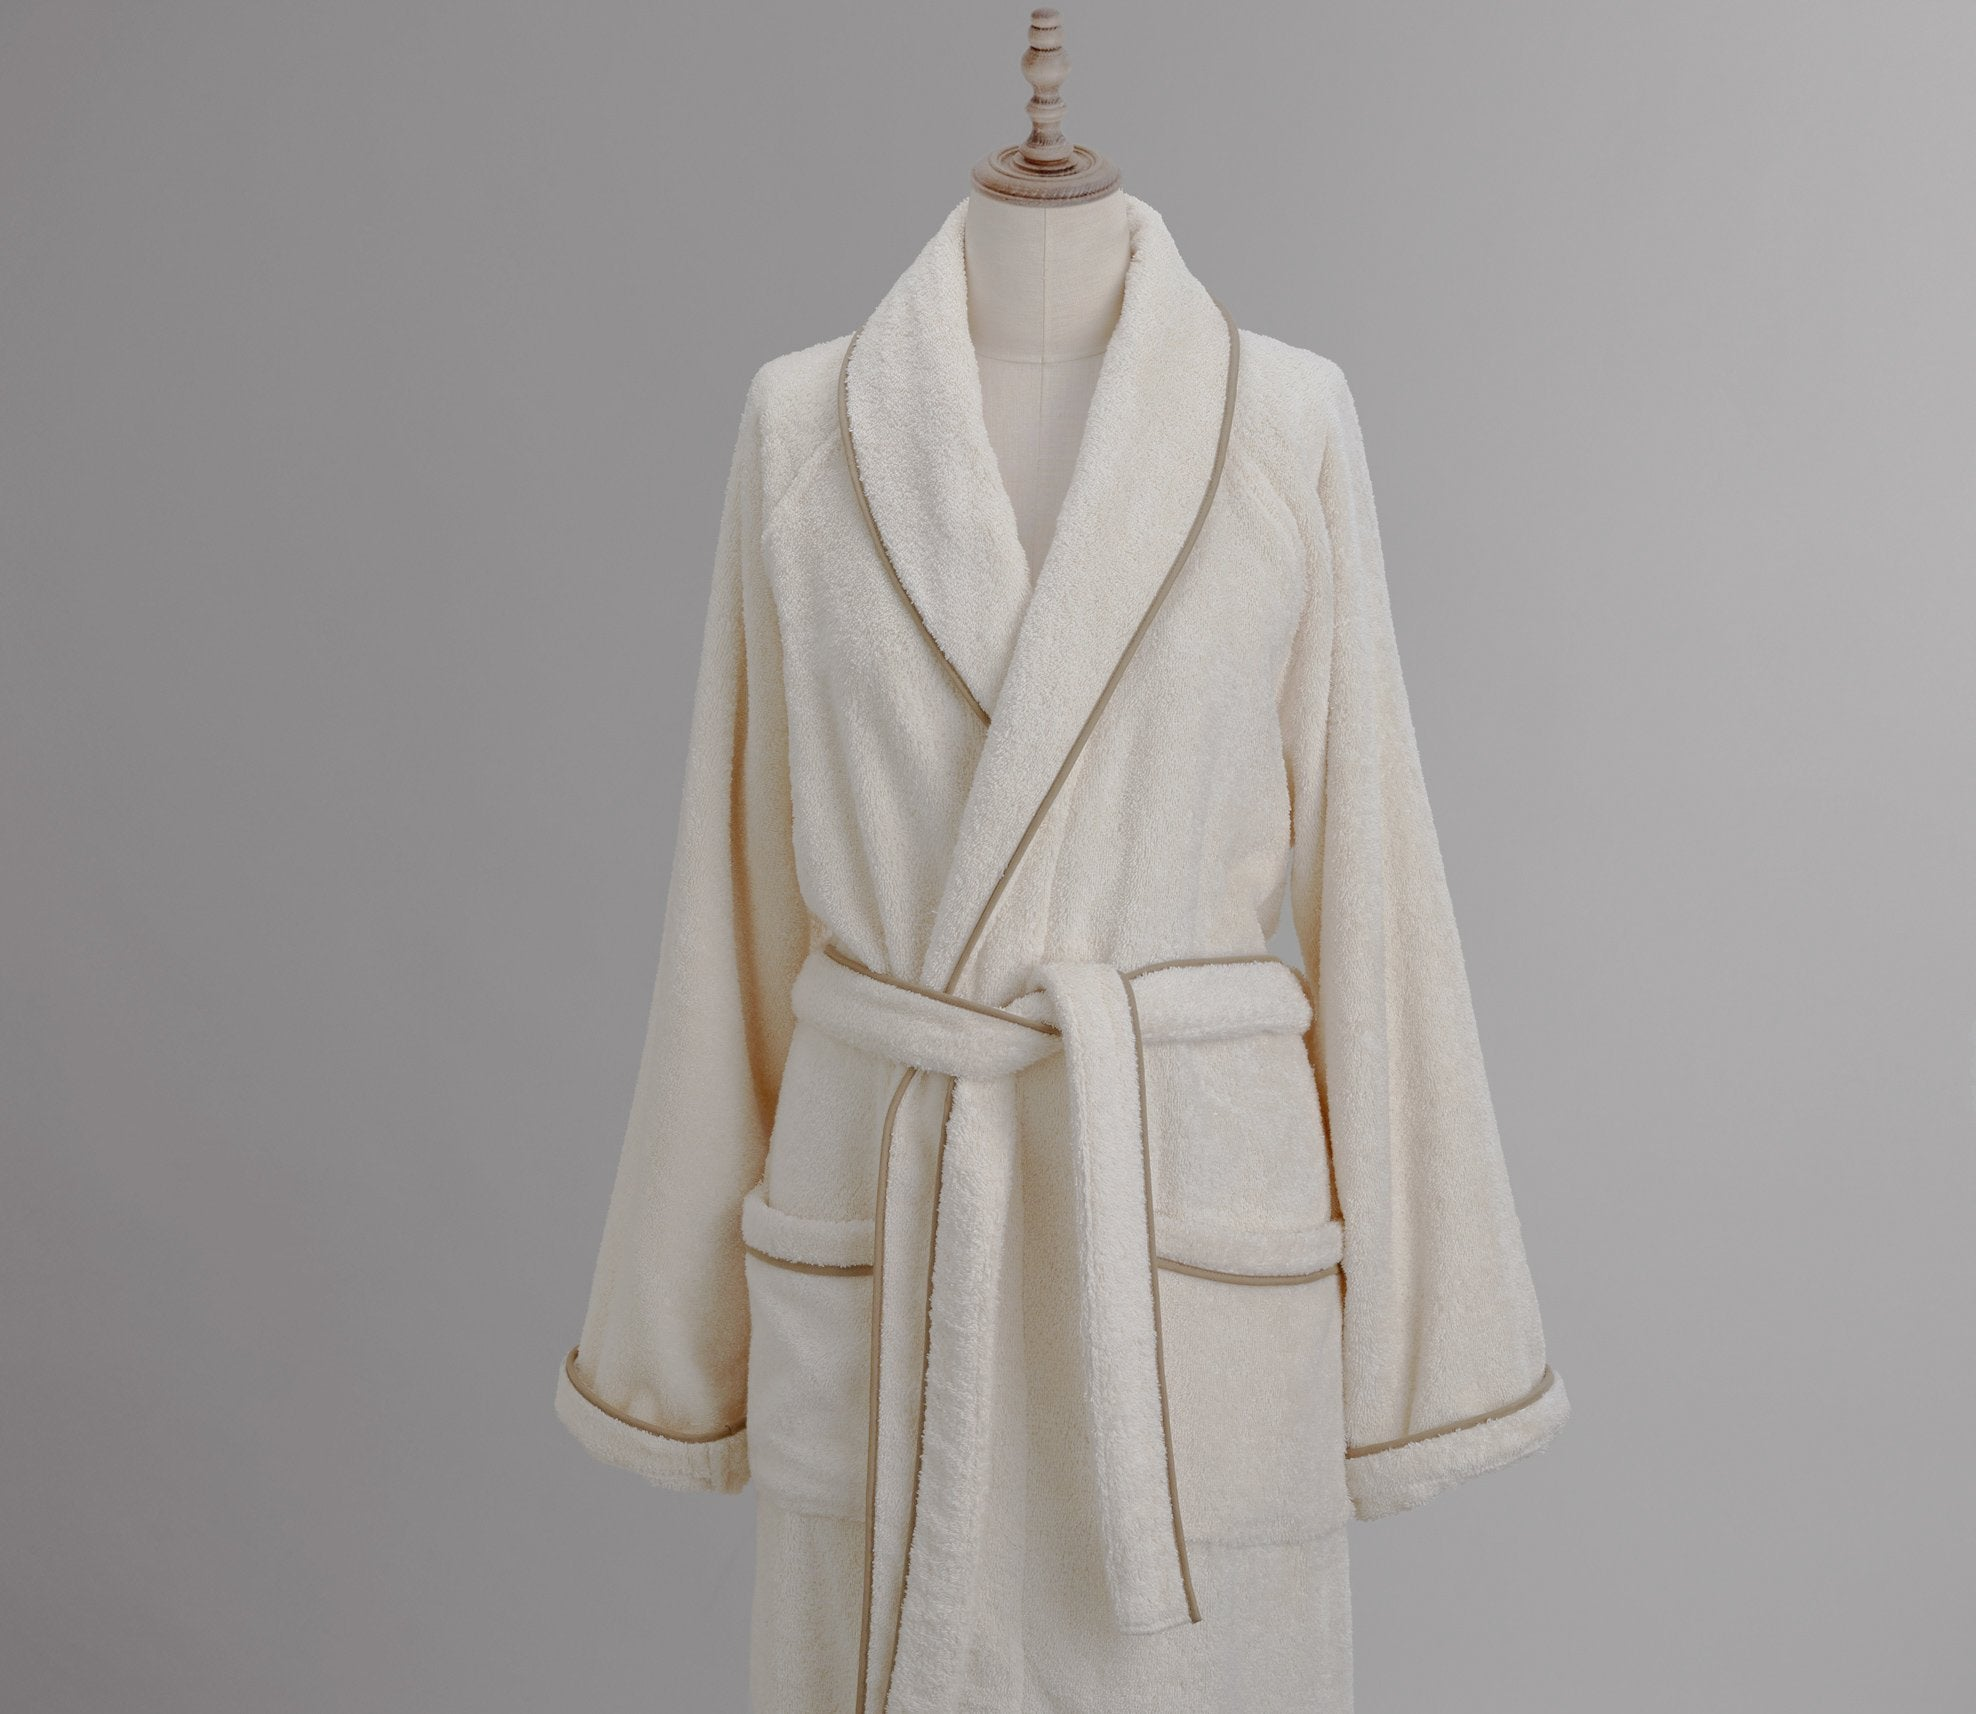 Cairo Robe Ivory Custom Medium Product Image 1